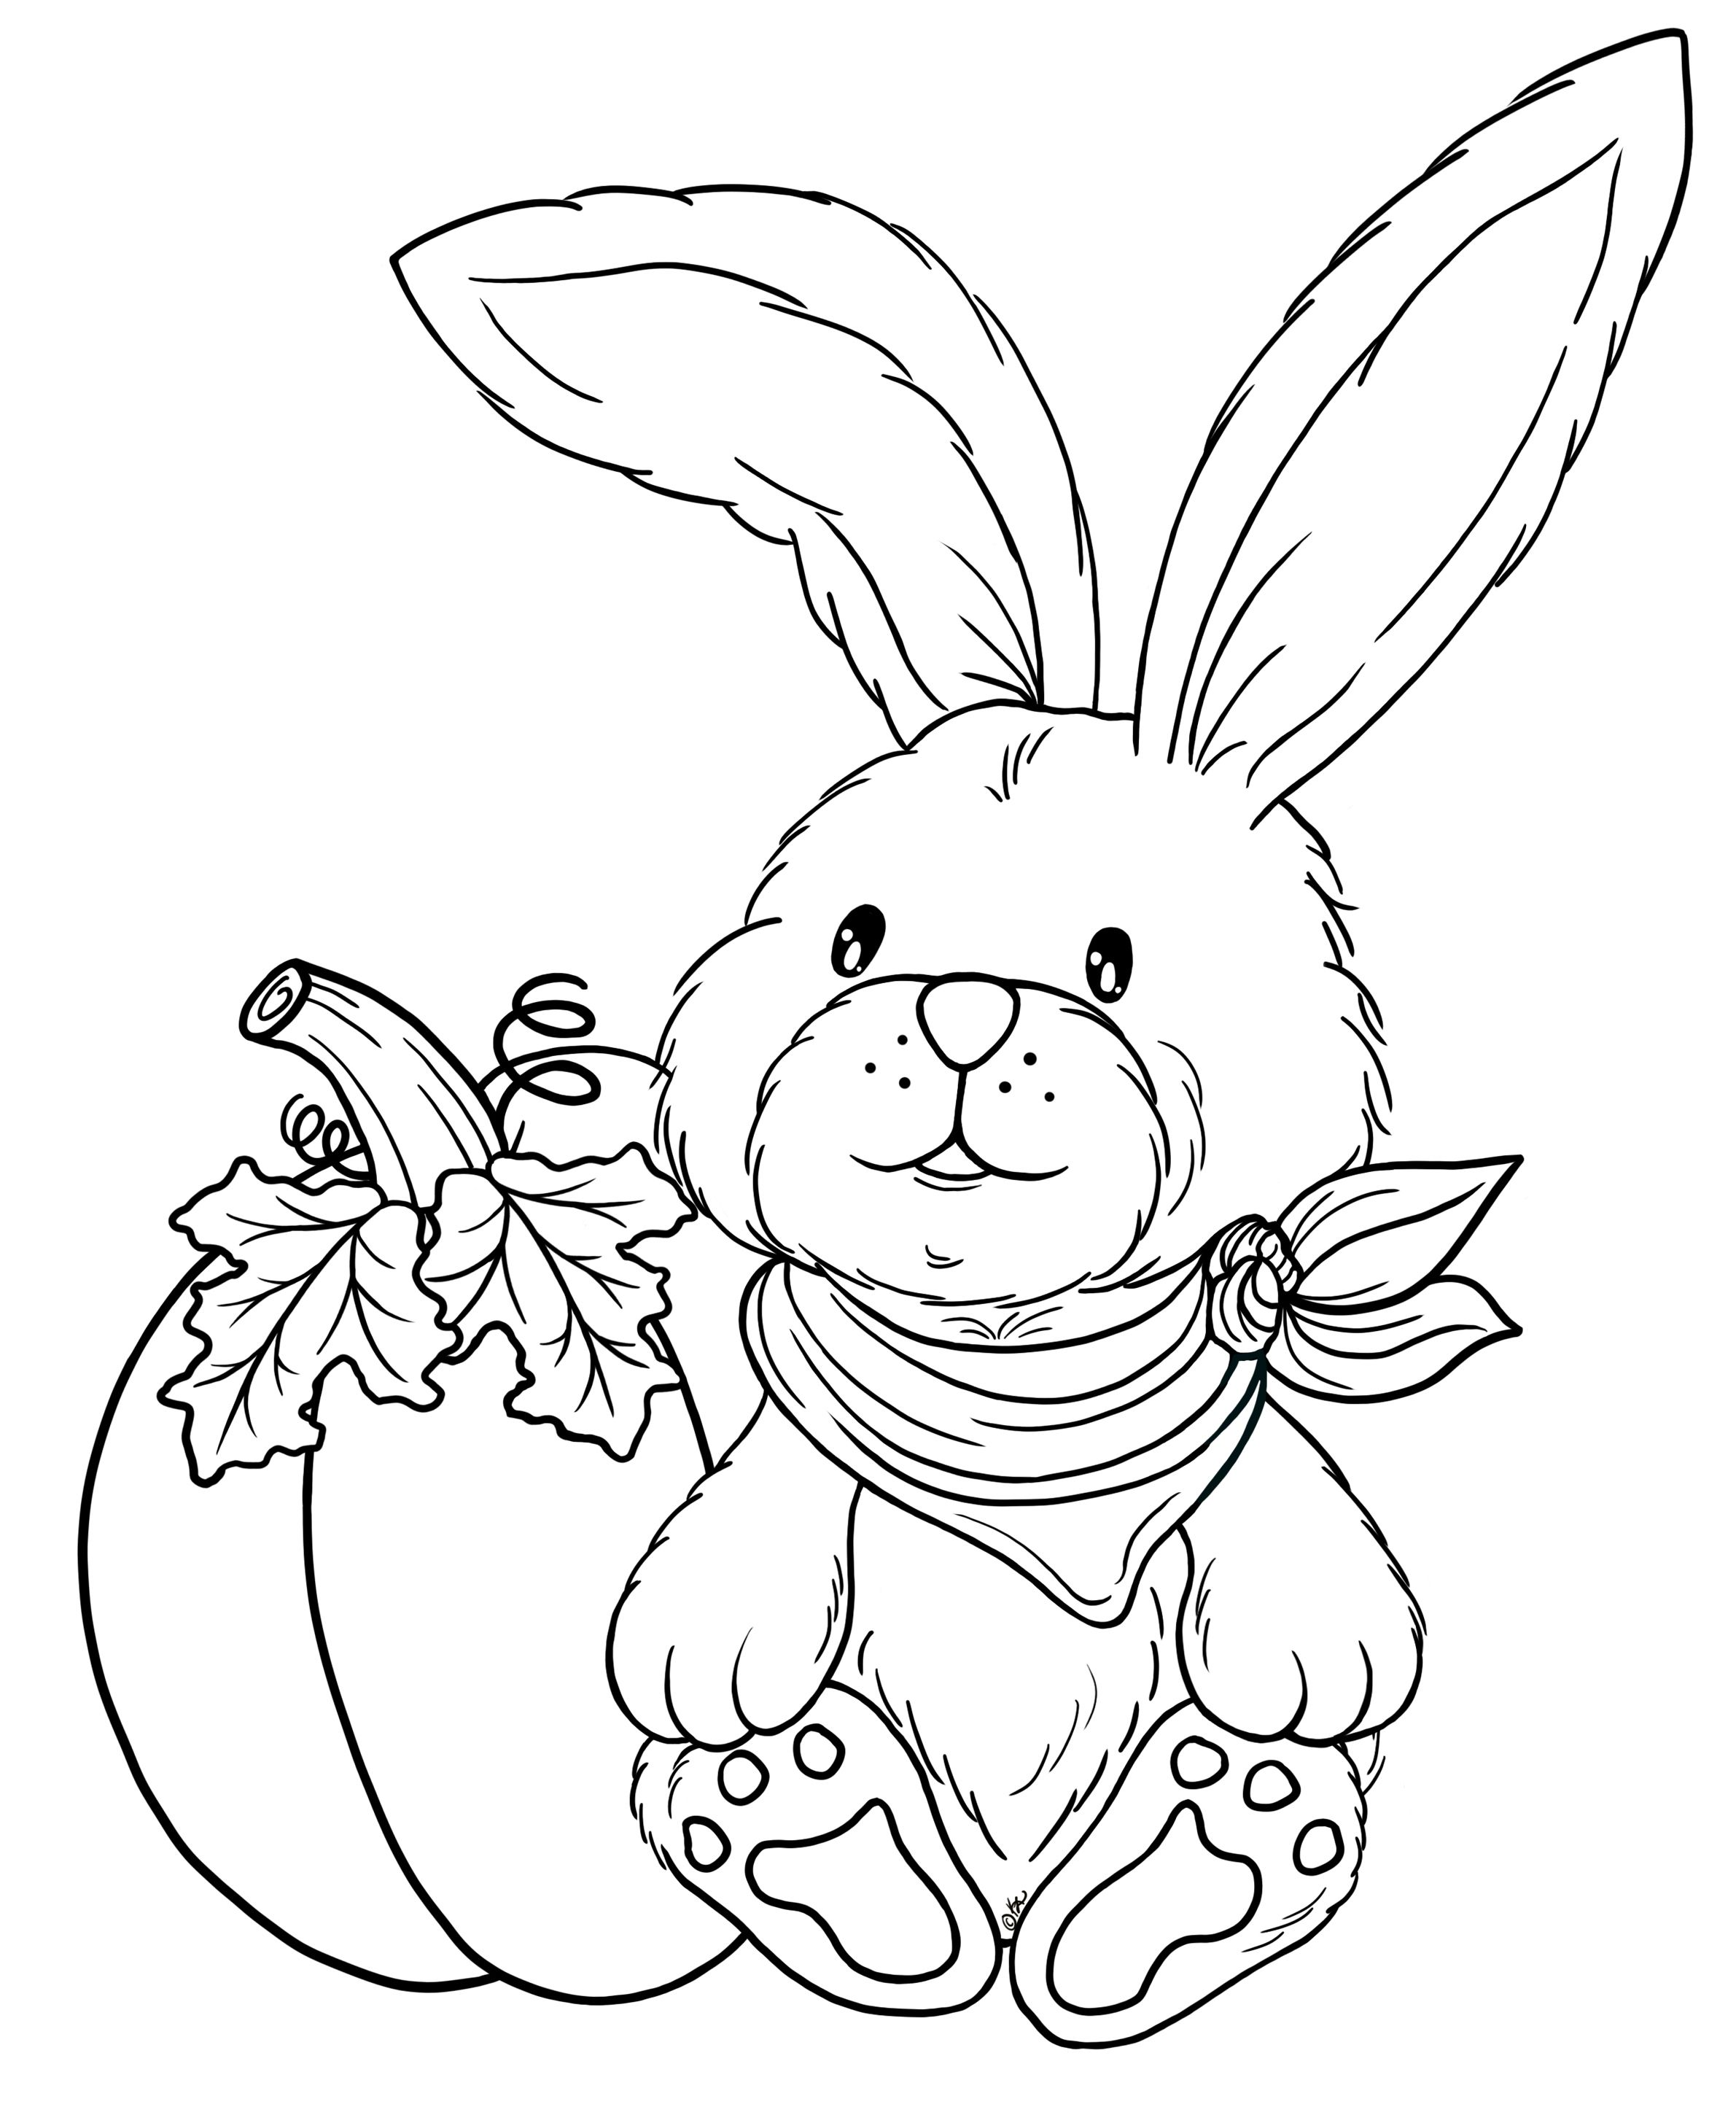 its happy bunny coloring pages - photo#16